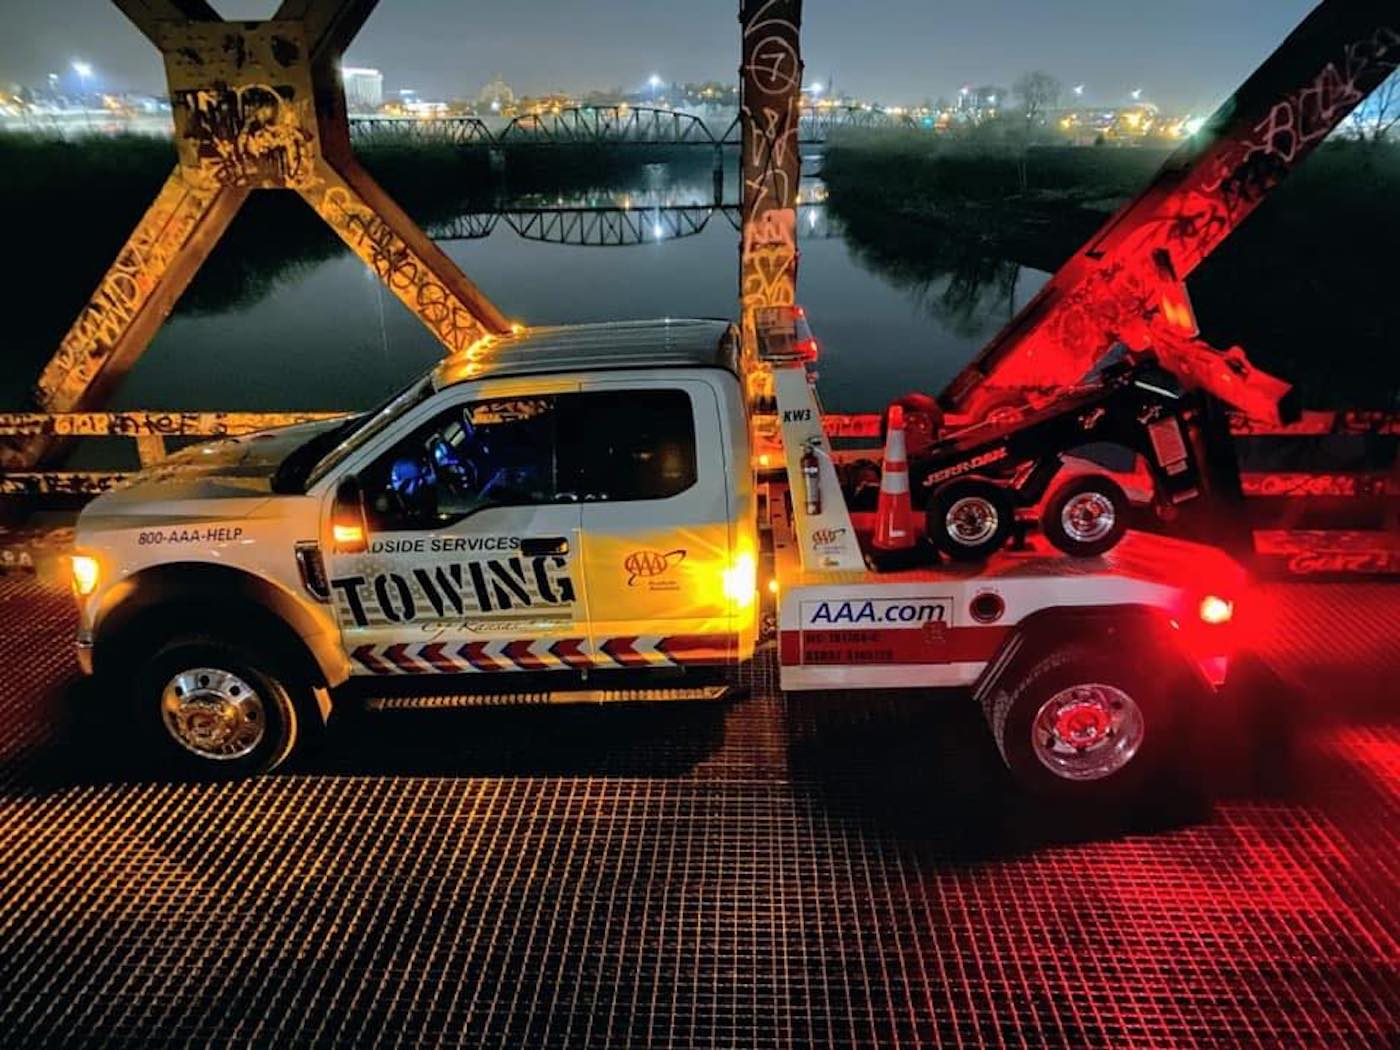 Roadside Services Towing of Kansas City MO